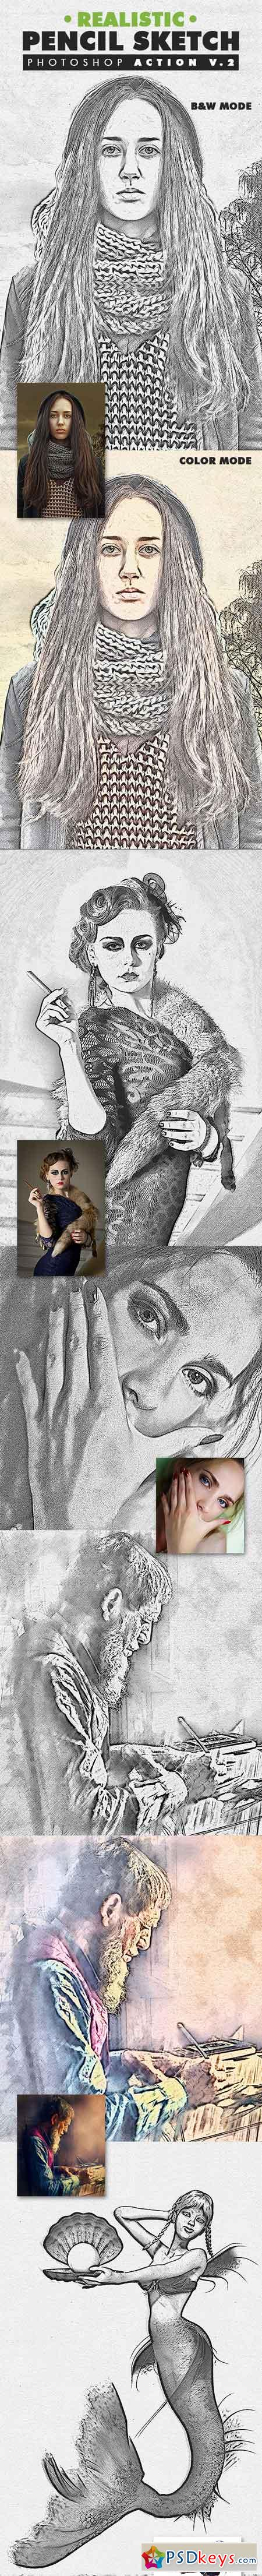 Realistic Pencil Sketch Photoshop Action Vol.2 19553148